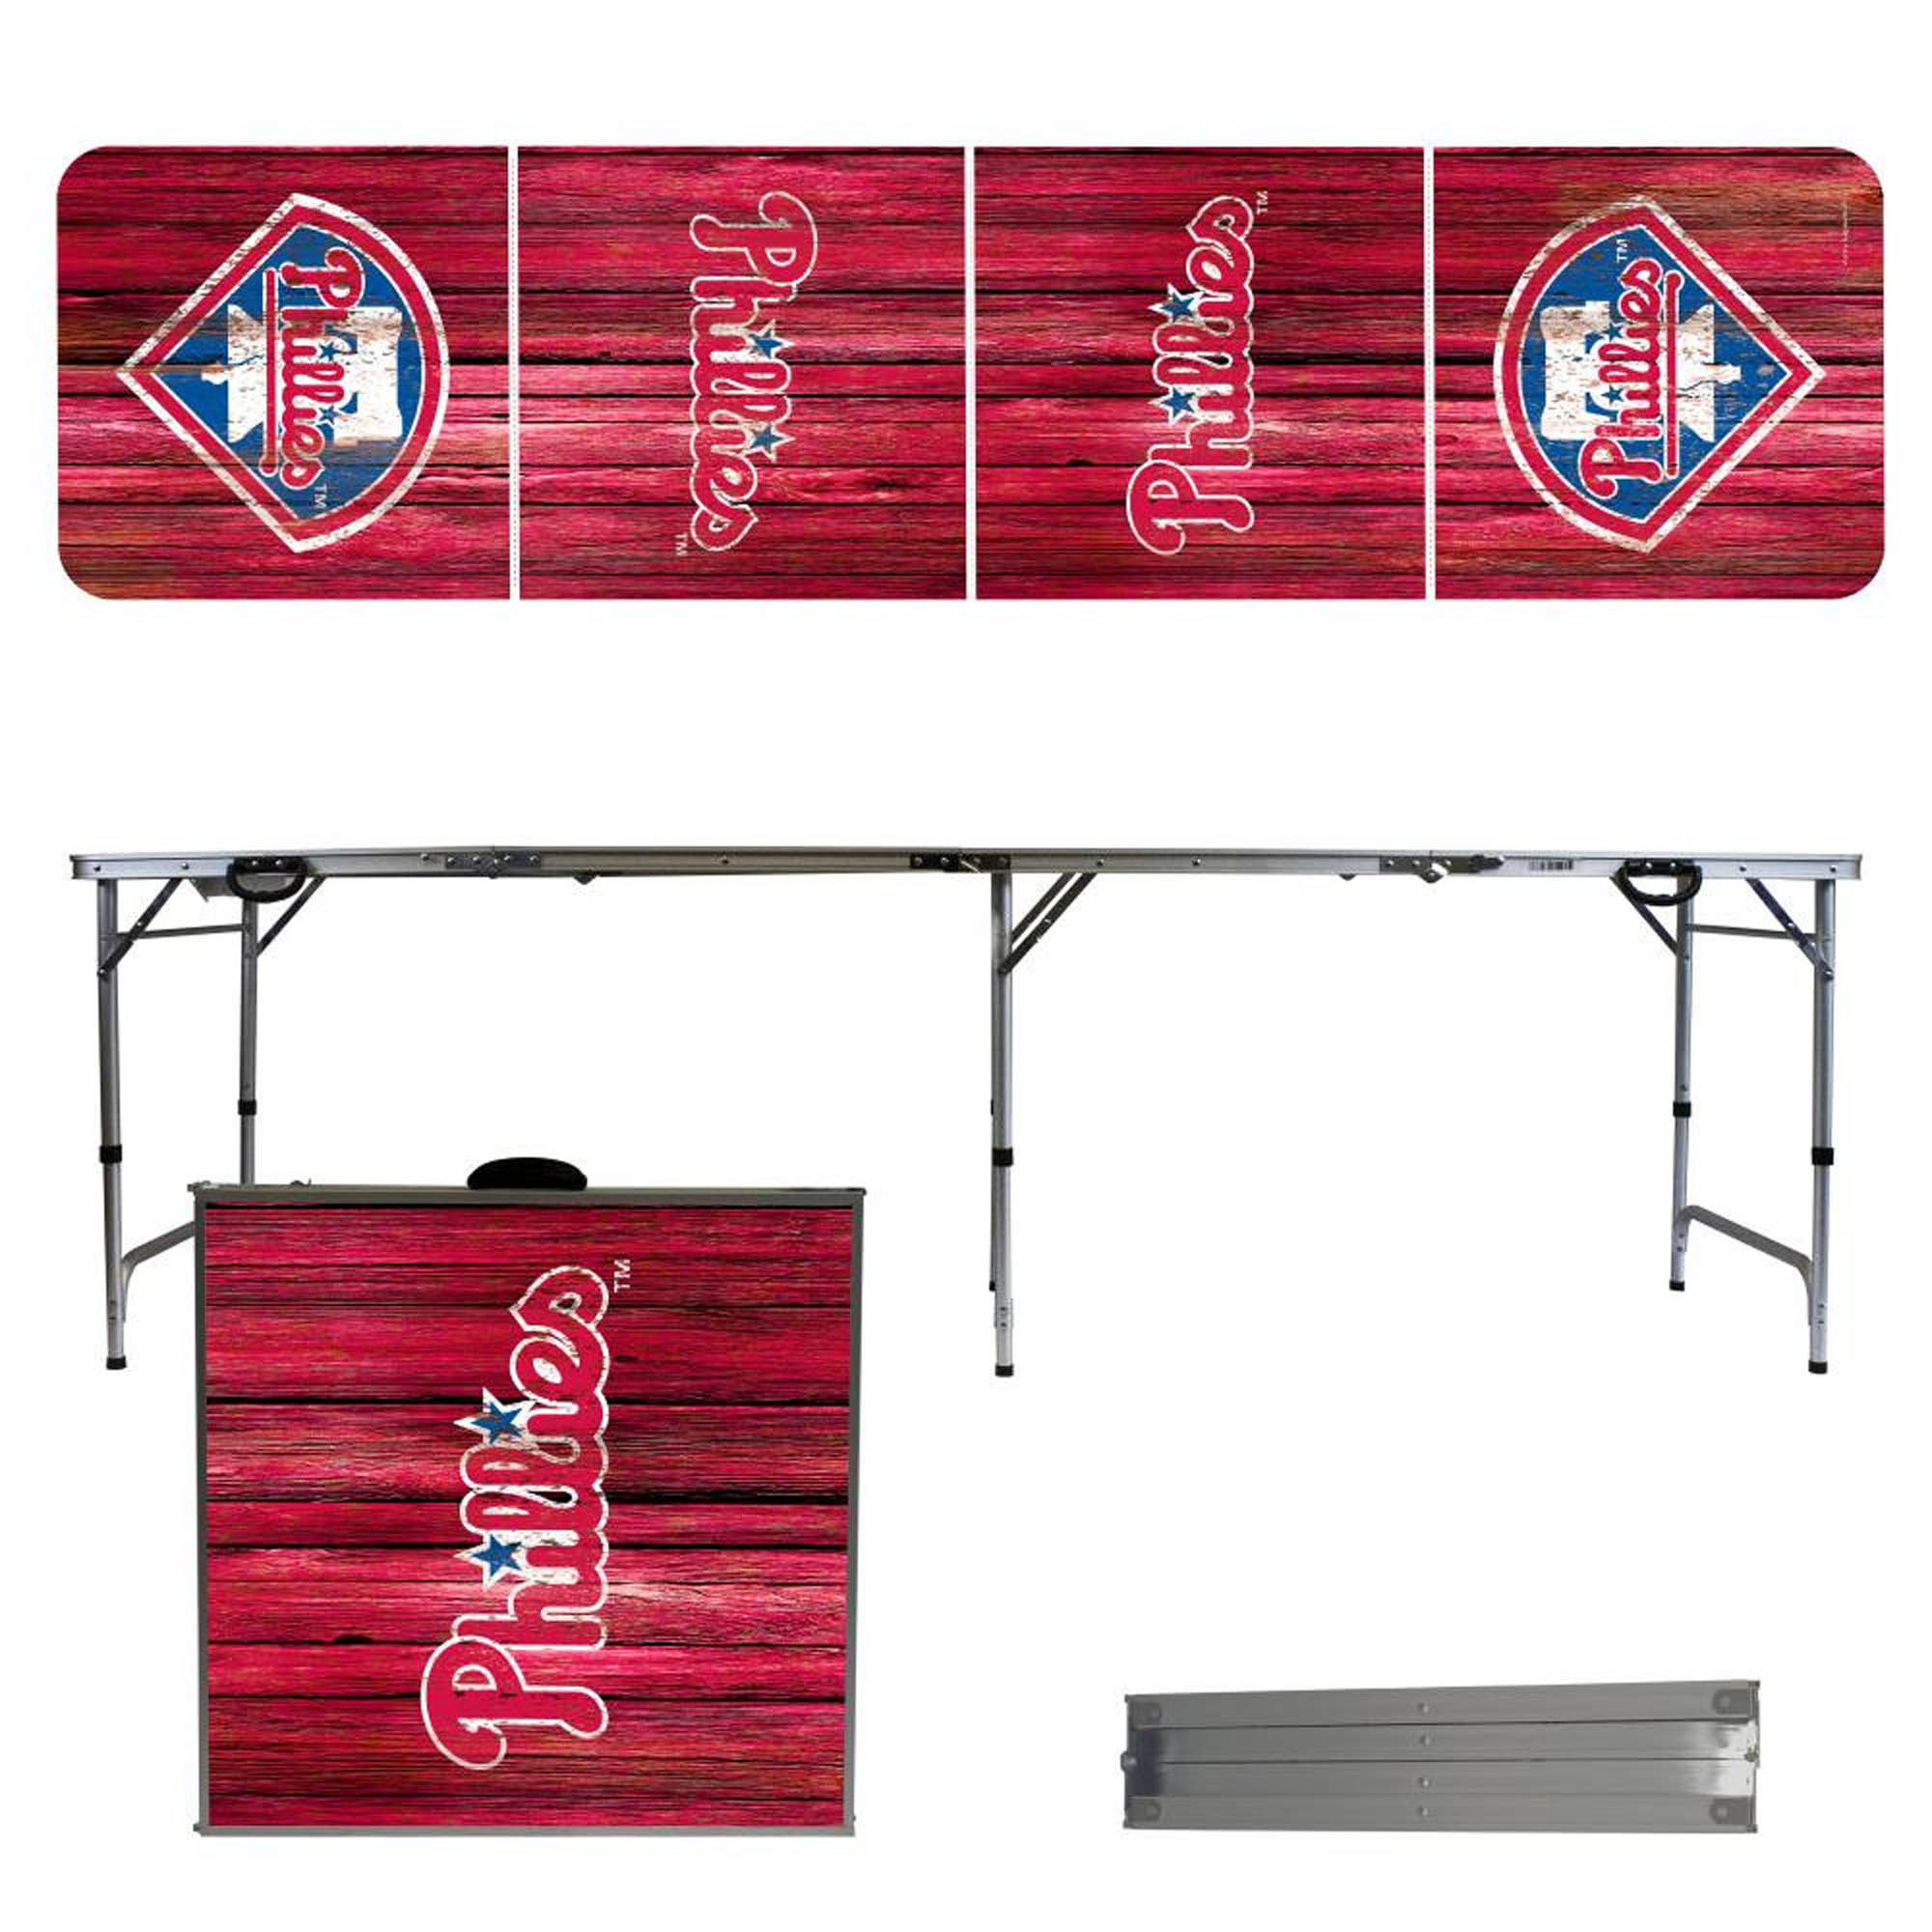 Philadelphia Phillies Weathered Design 8' Portable Folding Tailgate Table - No Size